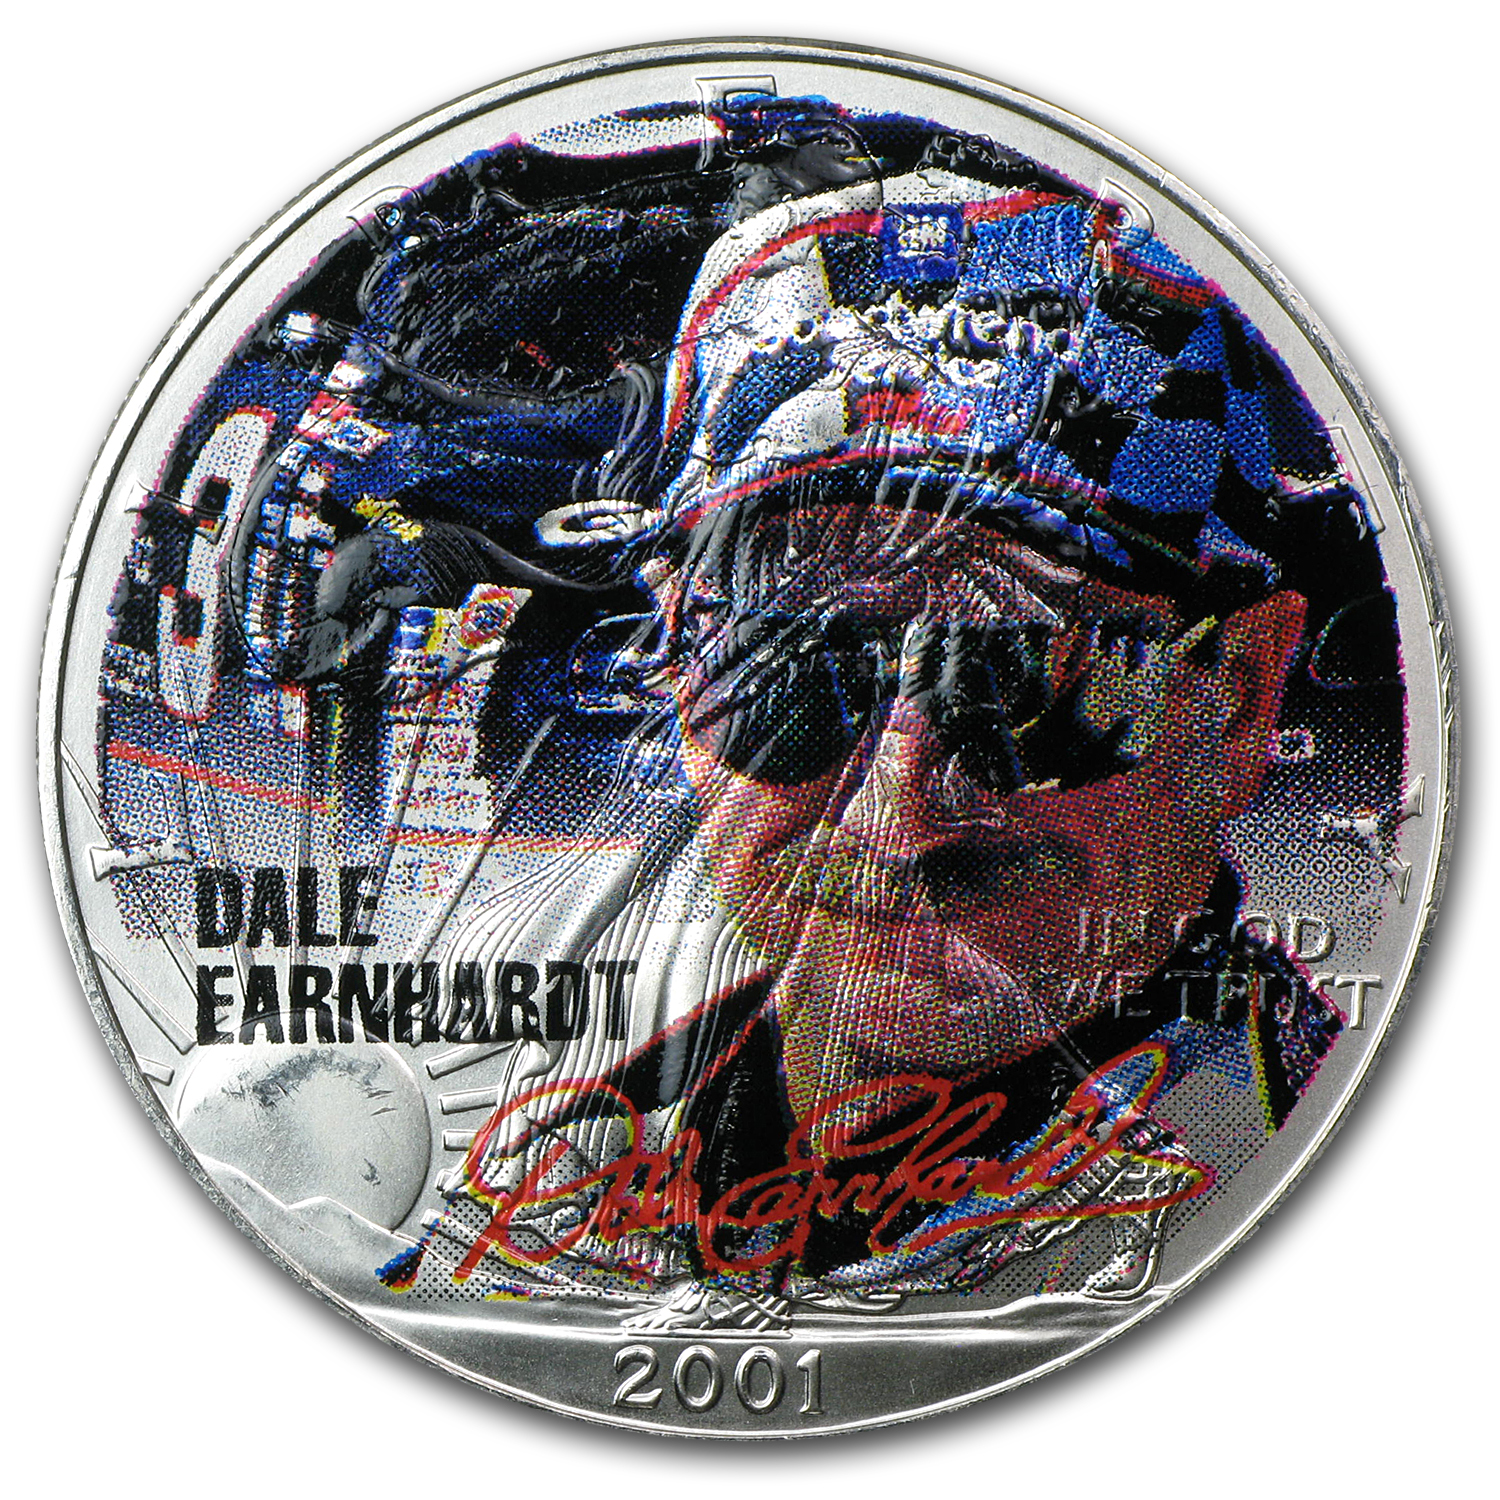 1 oz Silver American Eagle (Colorized) (Dale Earnhardt)